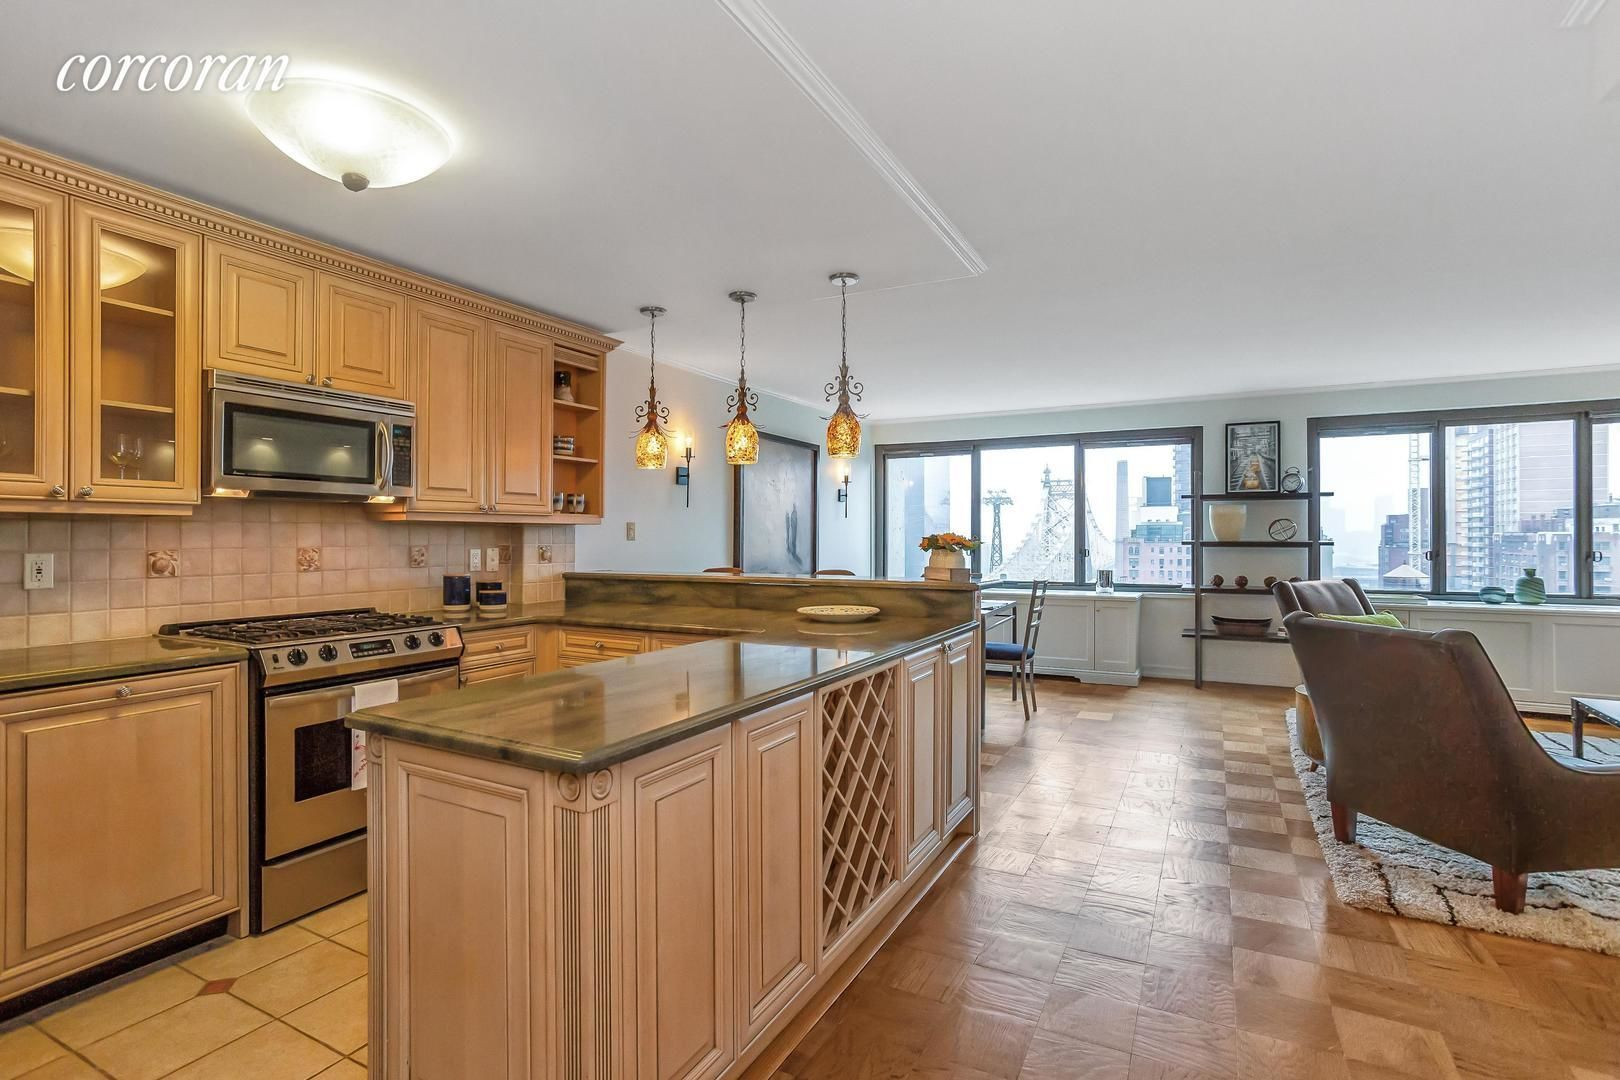 Apartment for sale at 300 East 59th Street, Apt 1607